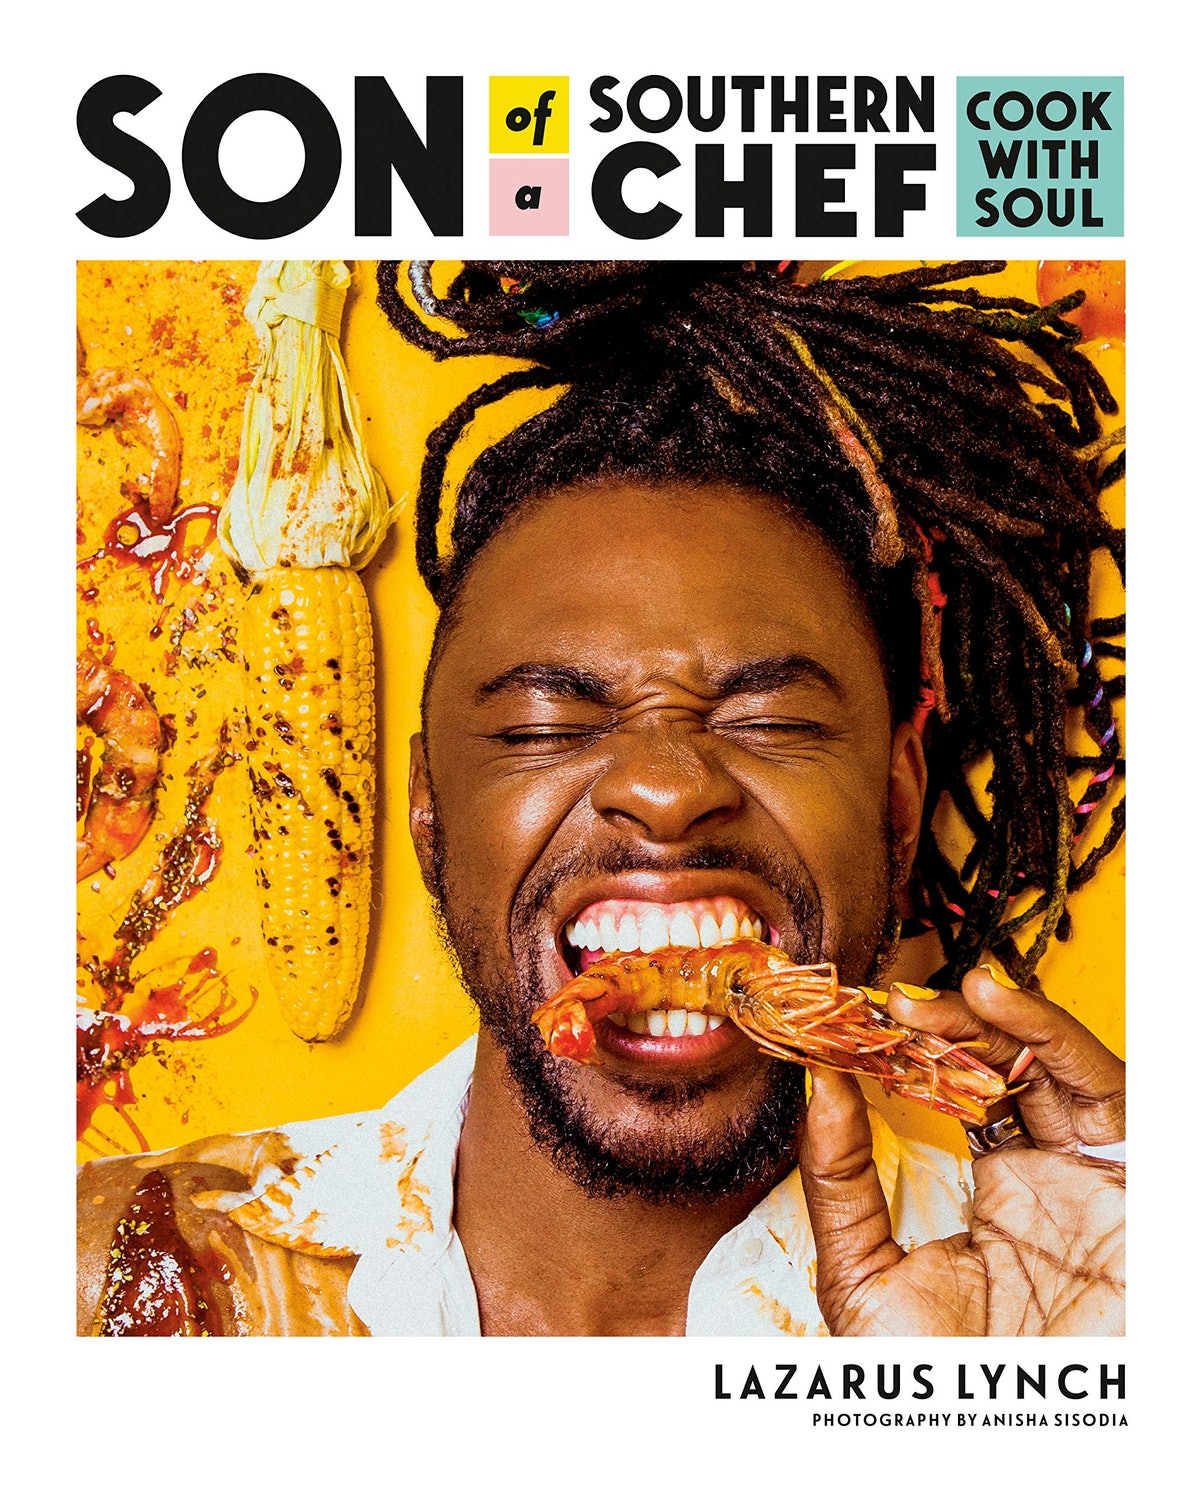 'Son of a Southern Chef: Cook with Soul' by Lazarus Lynch